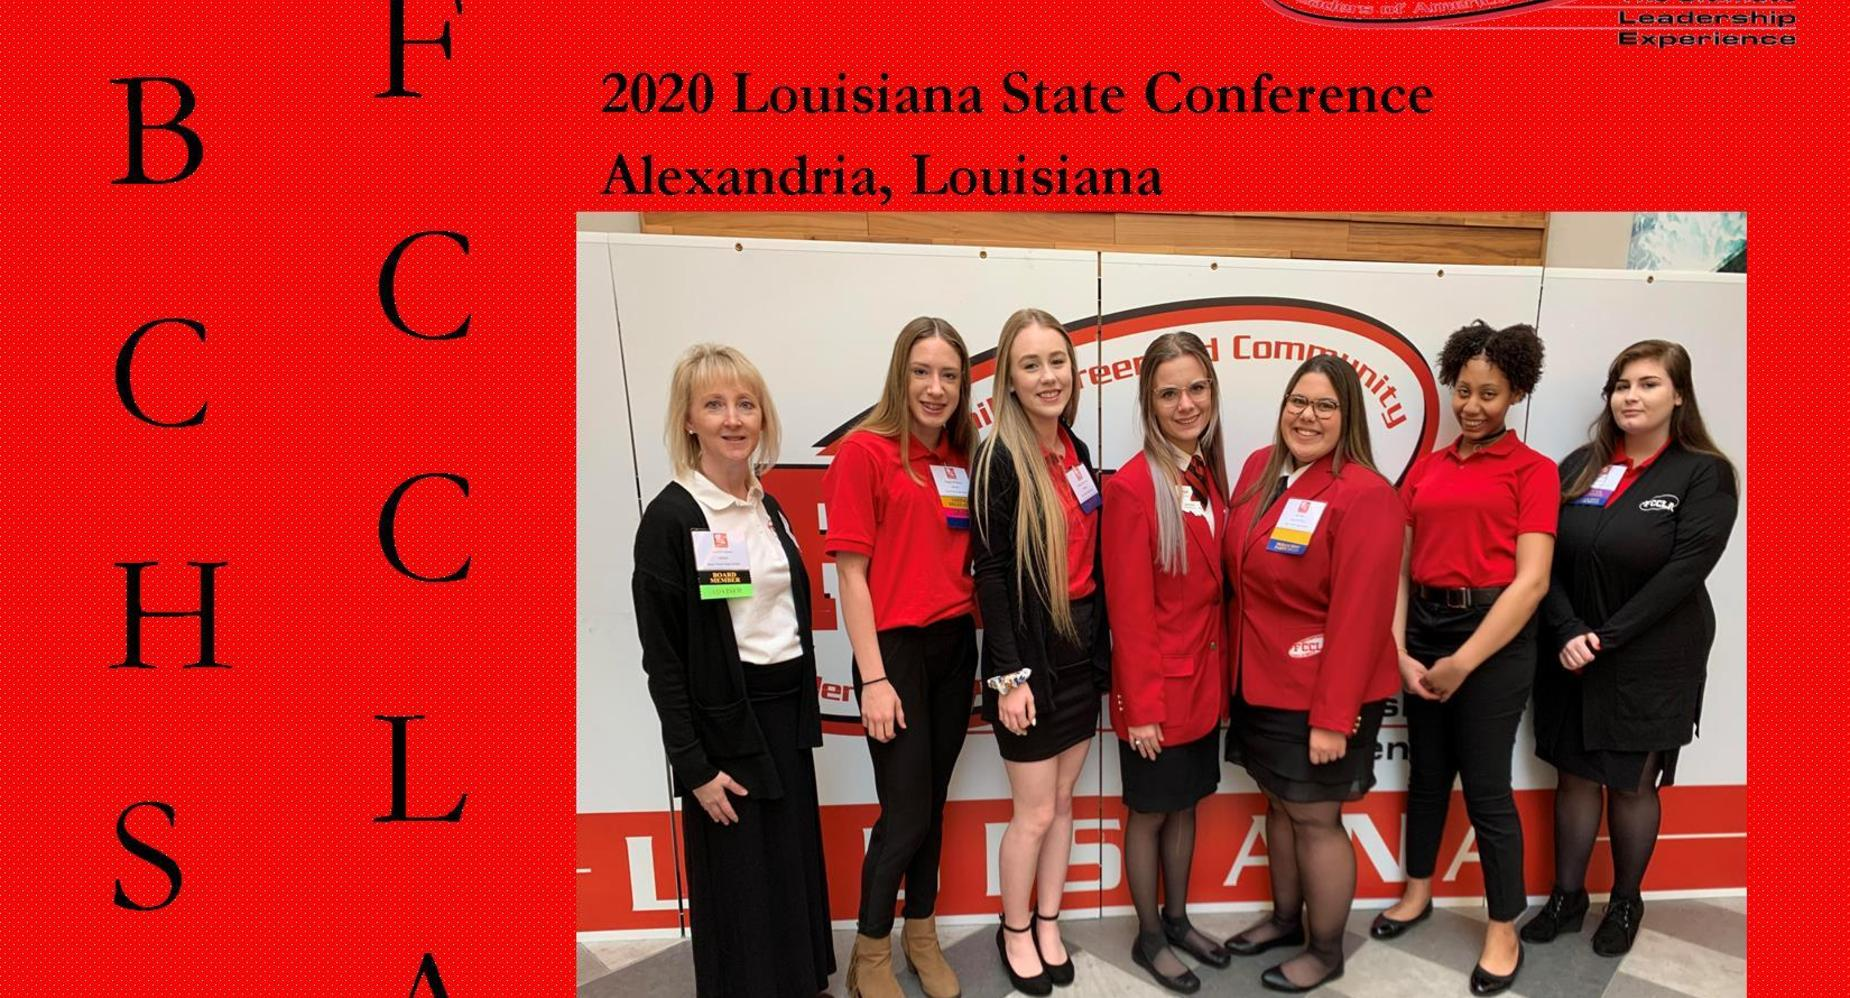 FCCLA BCHS students attends 2020 Louisiana State Conference in Alexandria, Louisiana